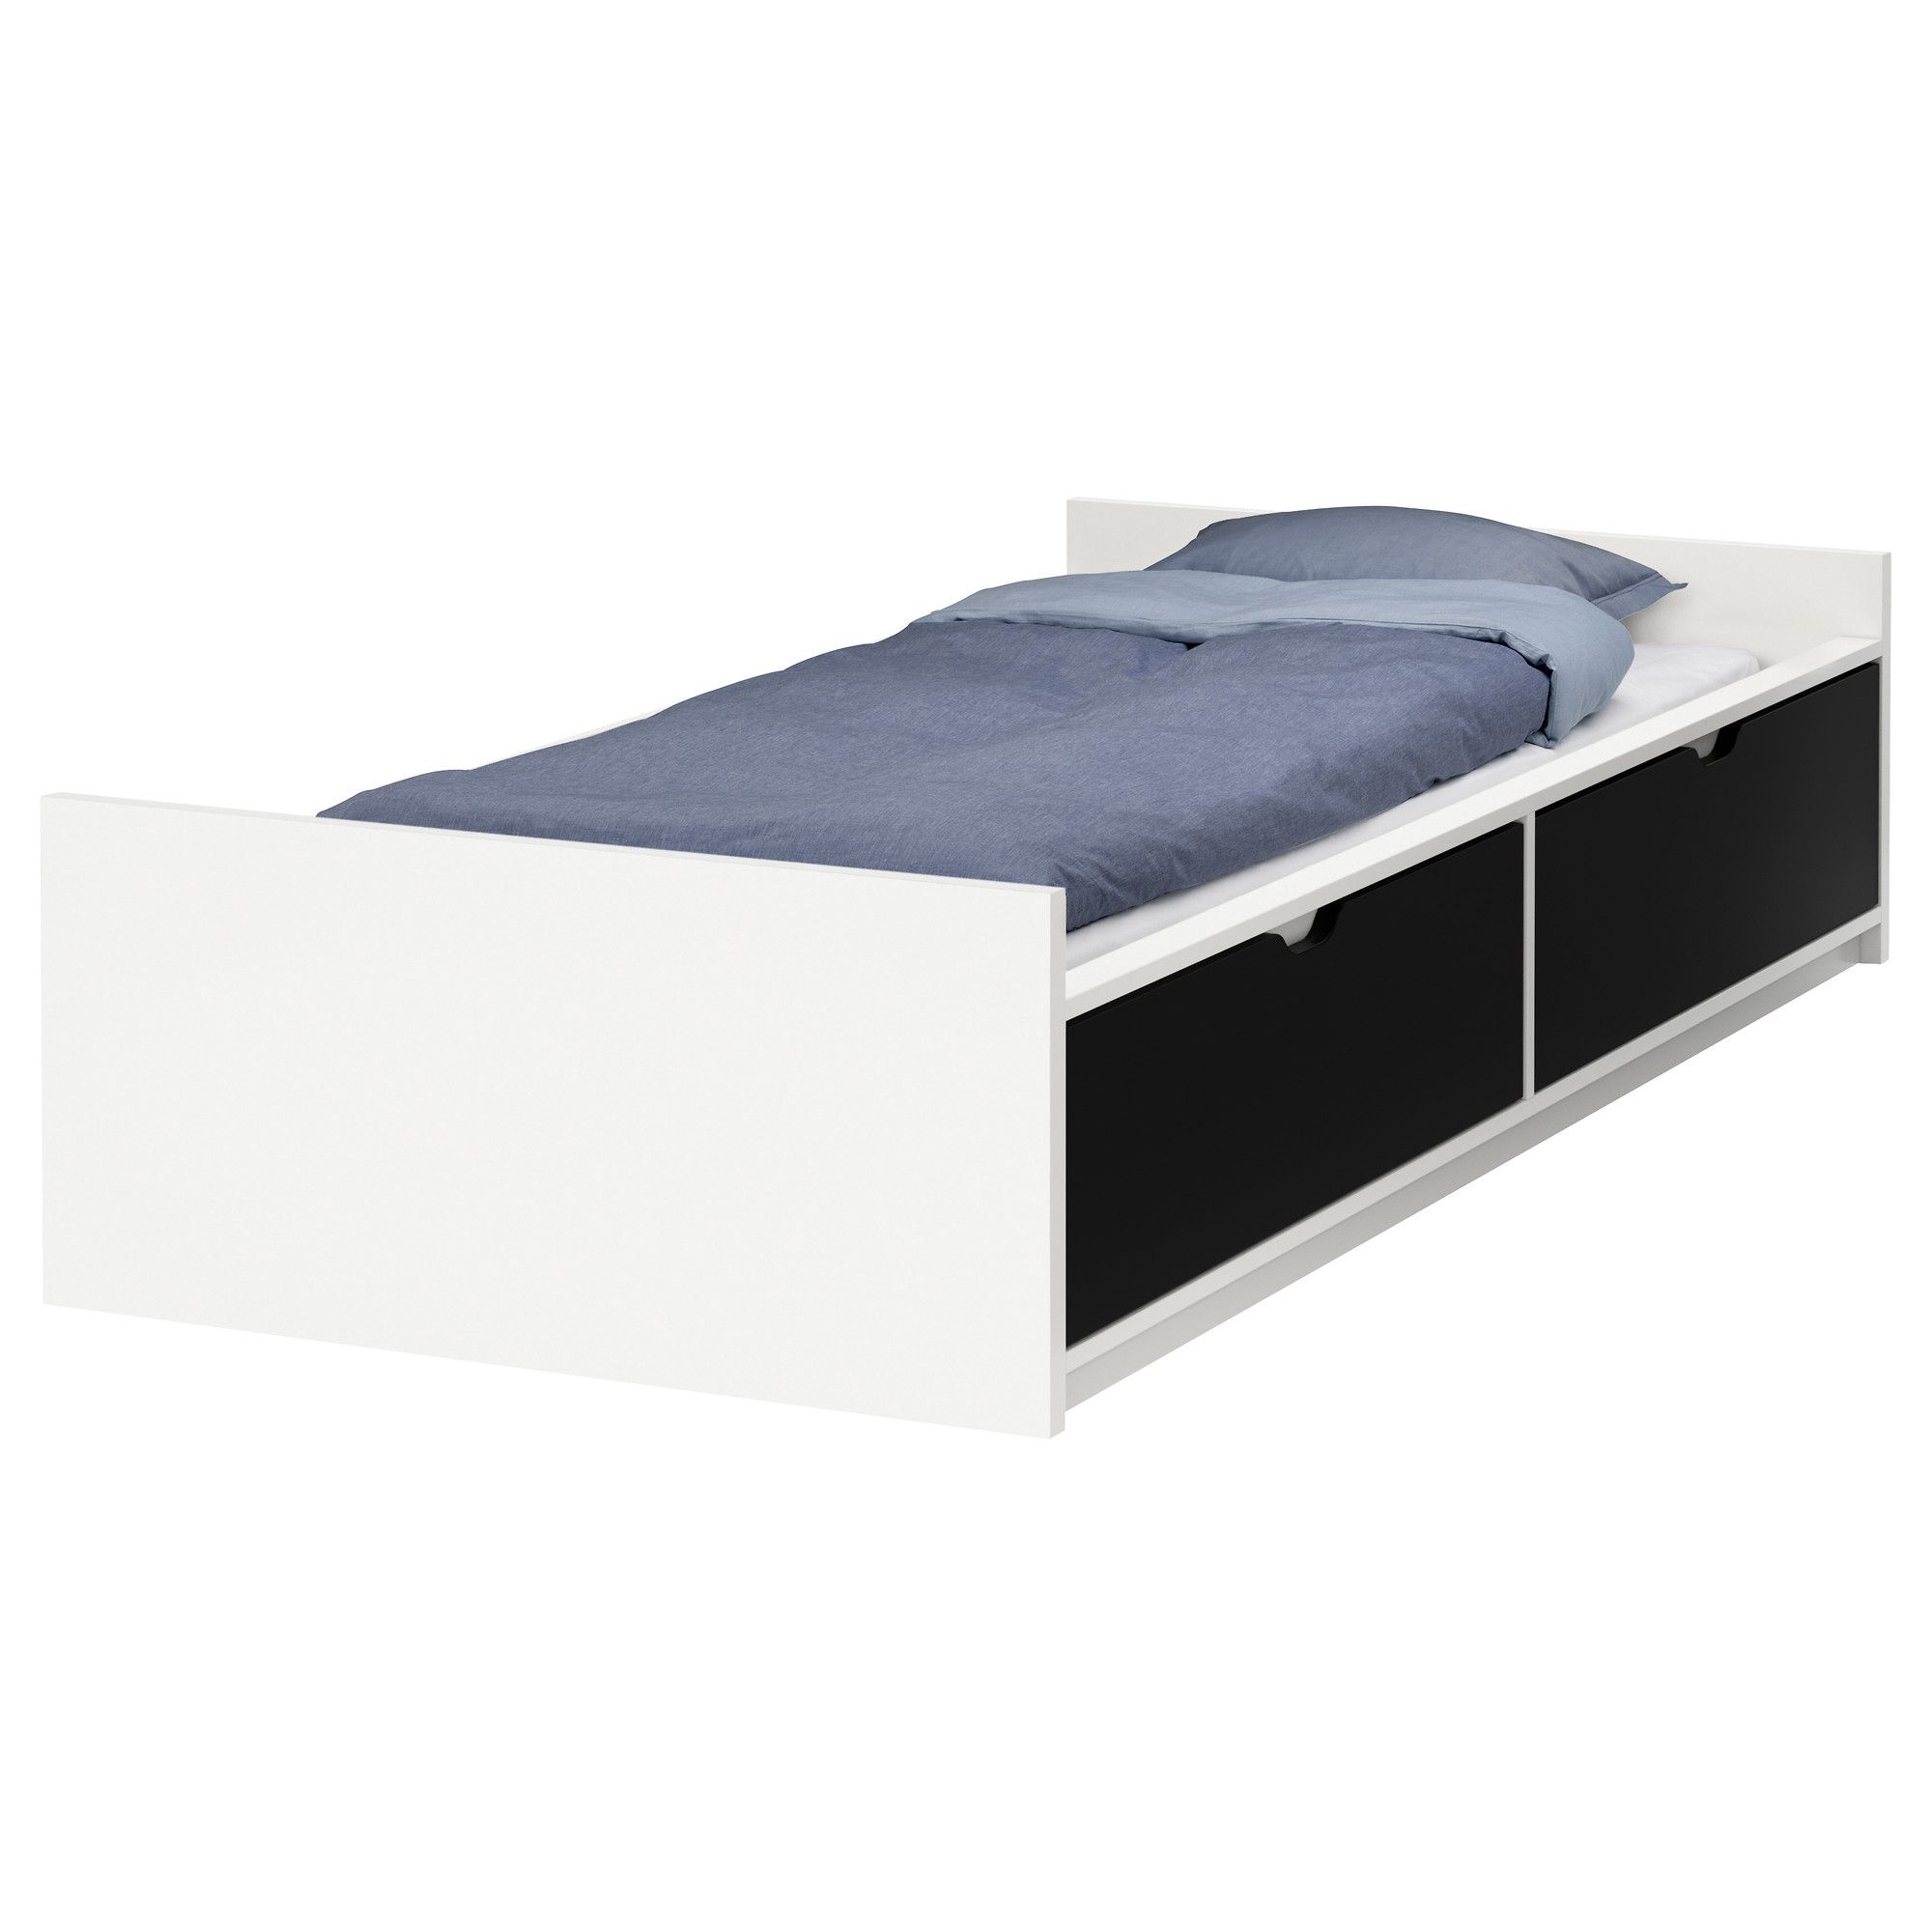 flaxa bed frame w storageslatted bedbase ikea what color is drawer